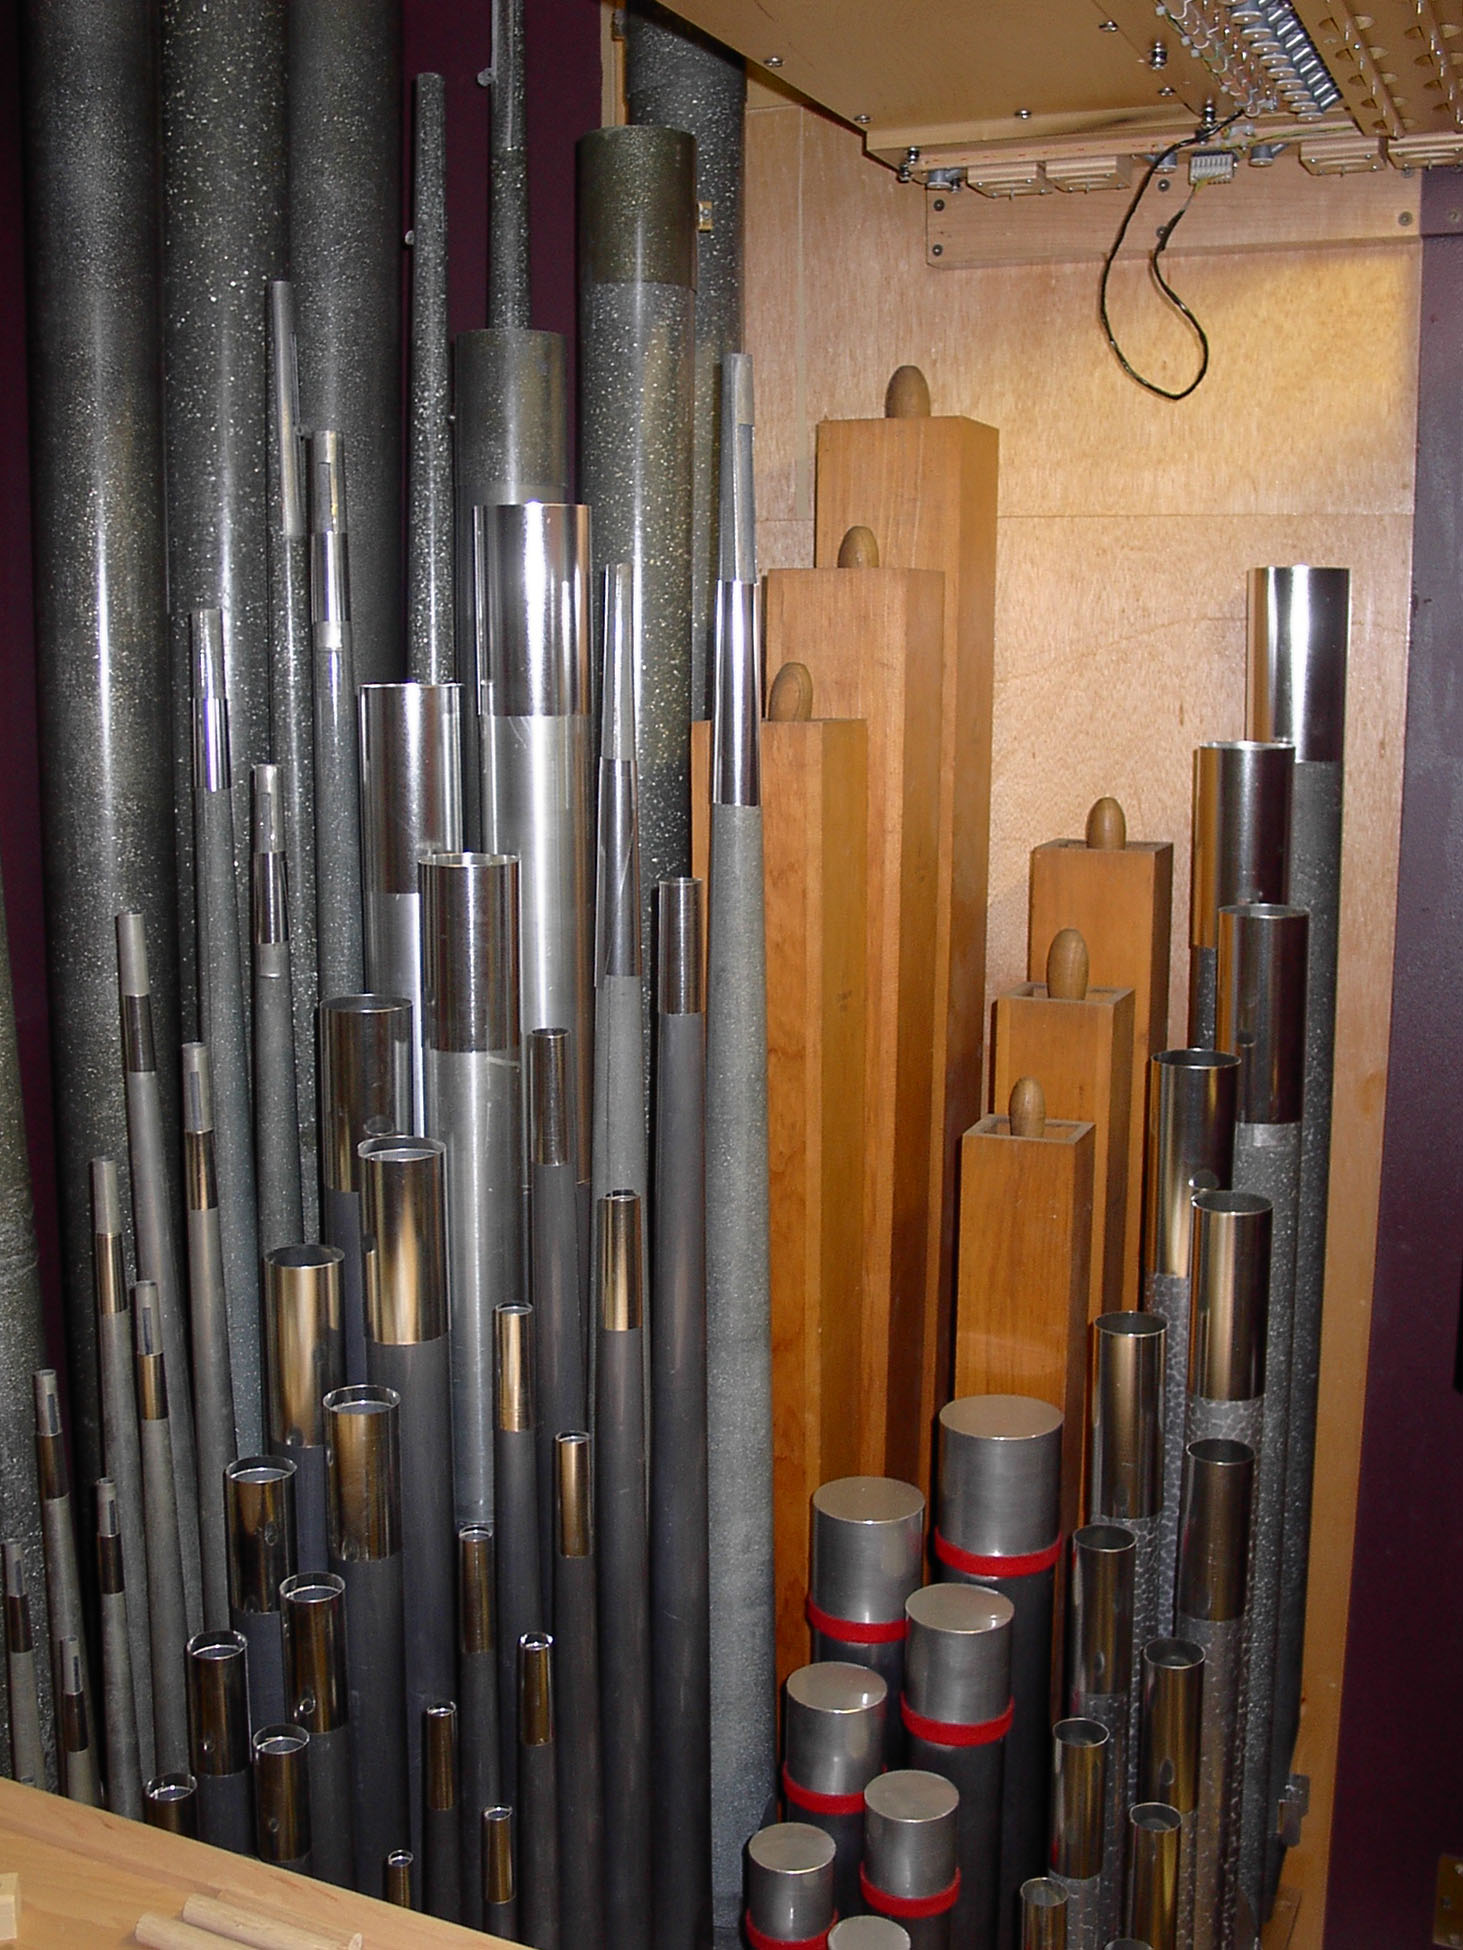 About Our Organ - First Parish in Concord